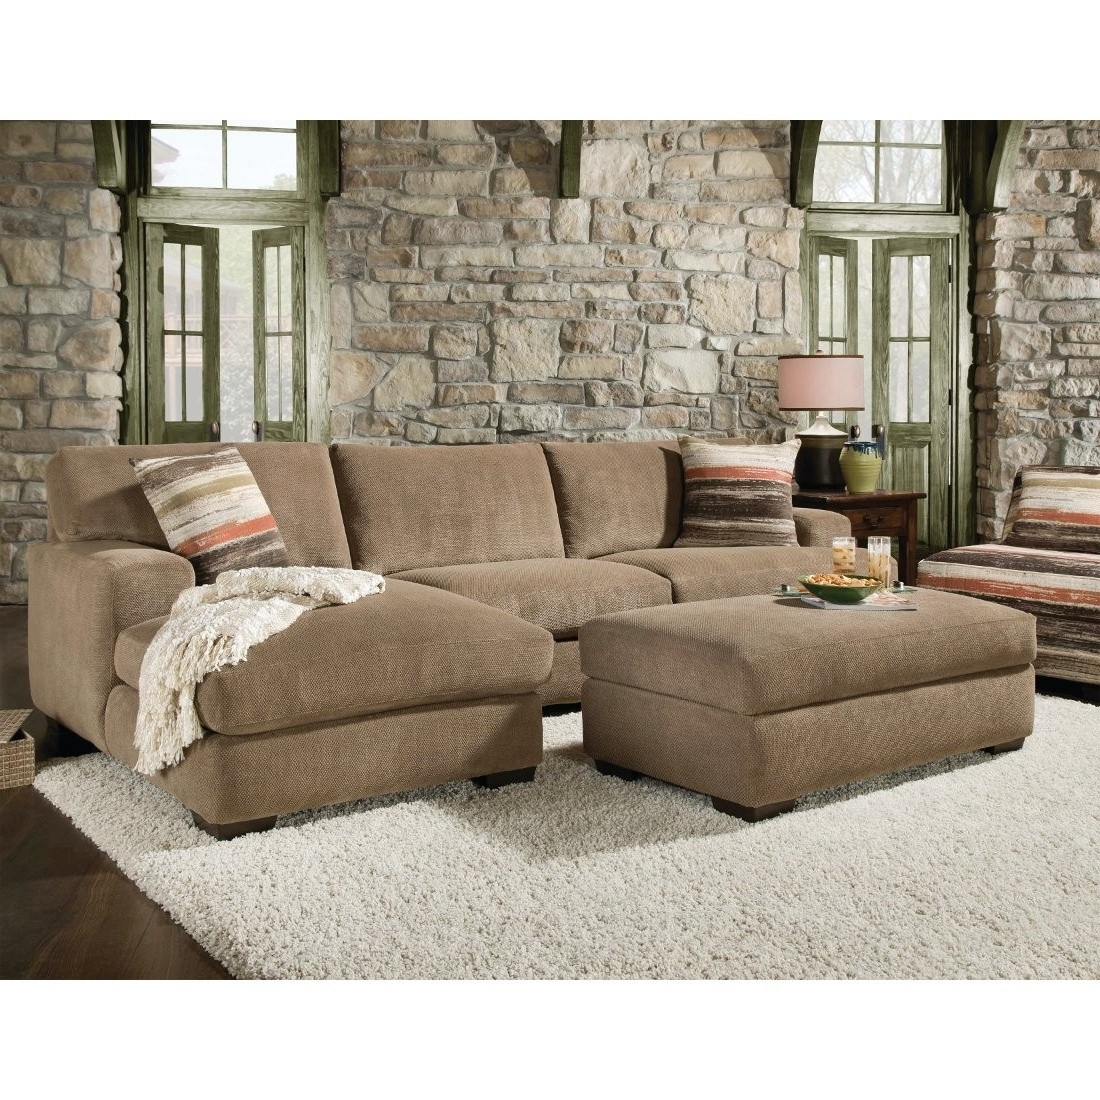 Well Liked Small Couches With Chaise Lounge With Regard To Small Sofa Chaise Lounge – Tanningworldexpo (View 7 of 15)